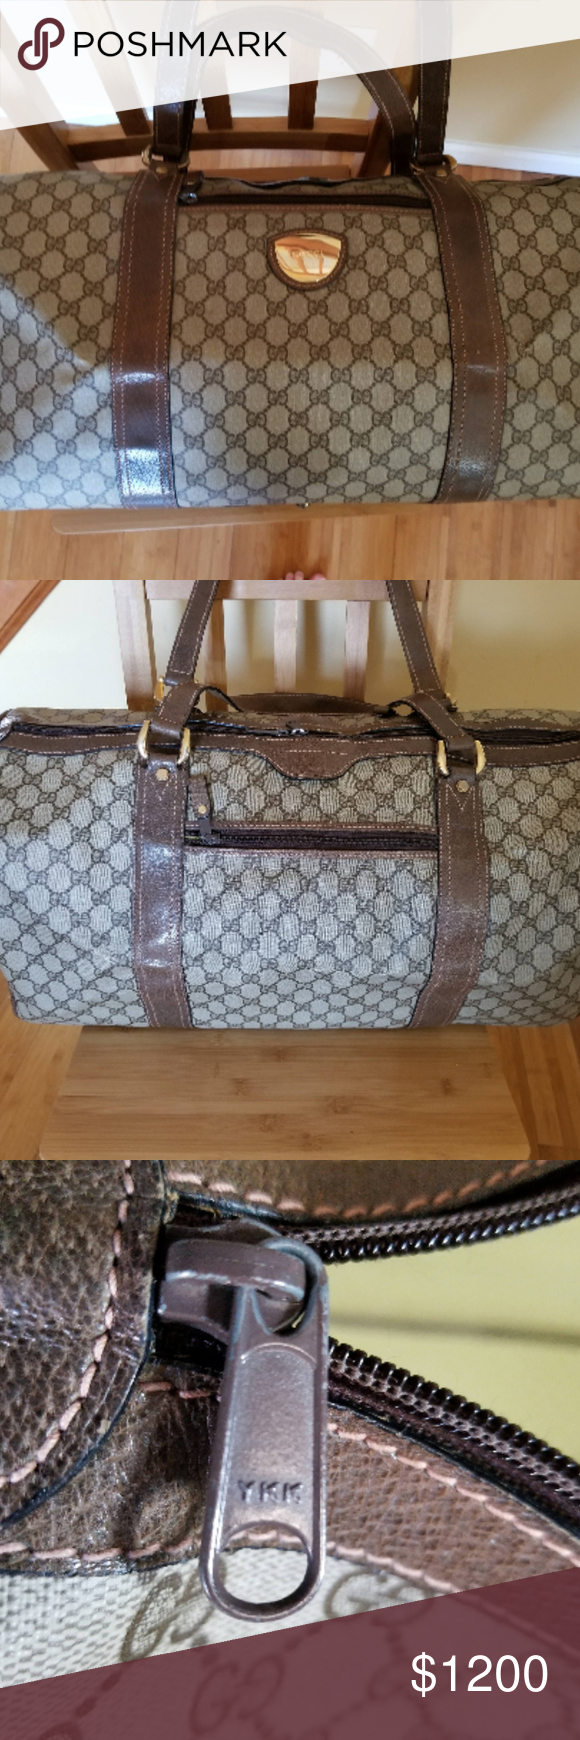 f981324704a1 Vintage Gucci Plus Duffle Gym Travel bag Great Rare Vintage Brown Gucci  Plus Wide Zip Top